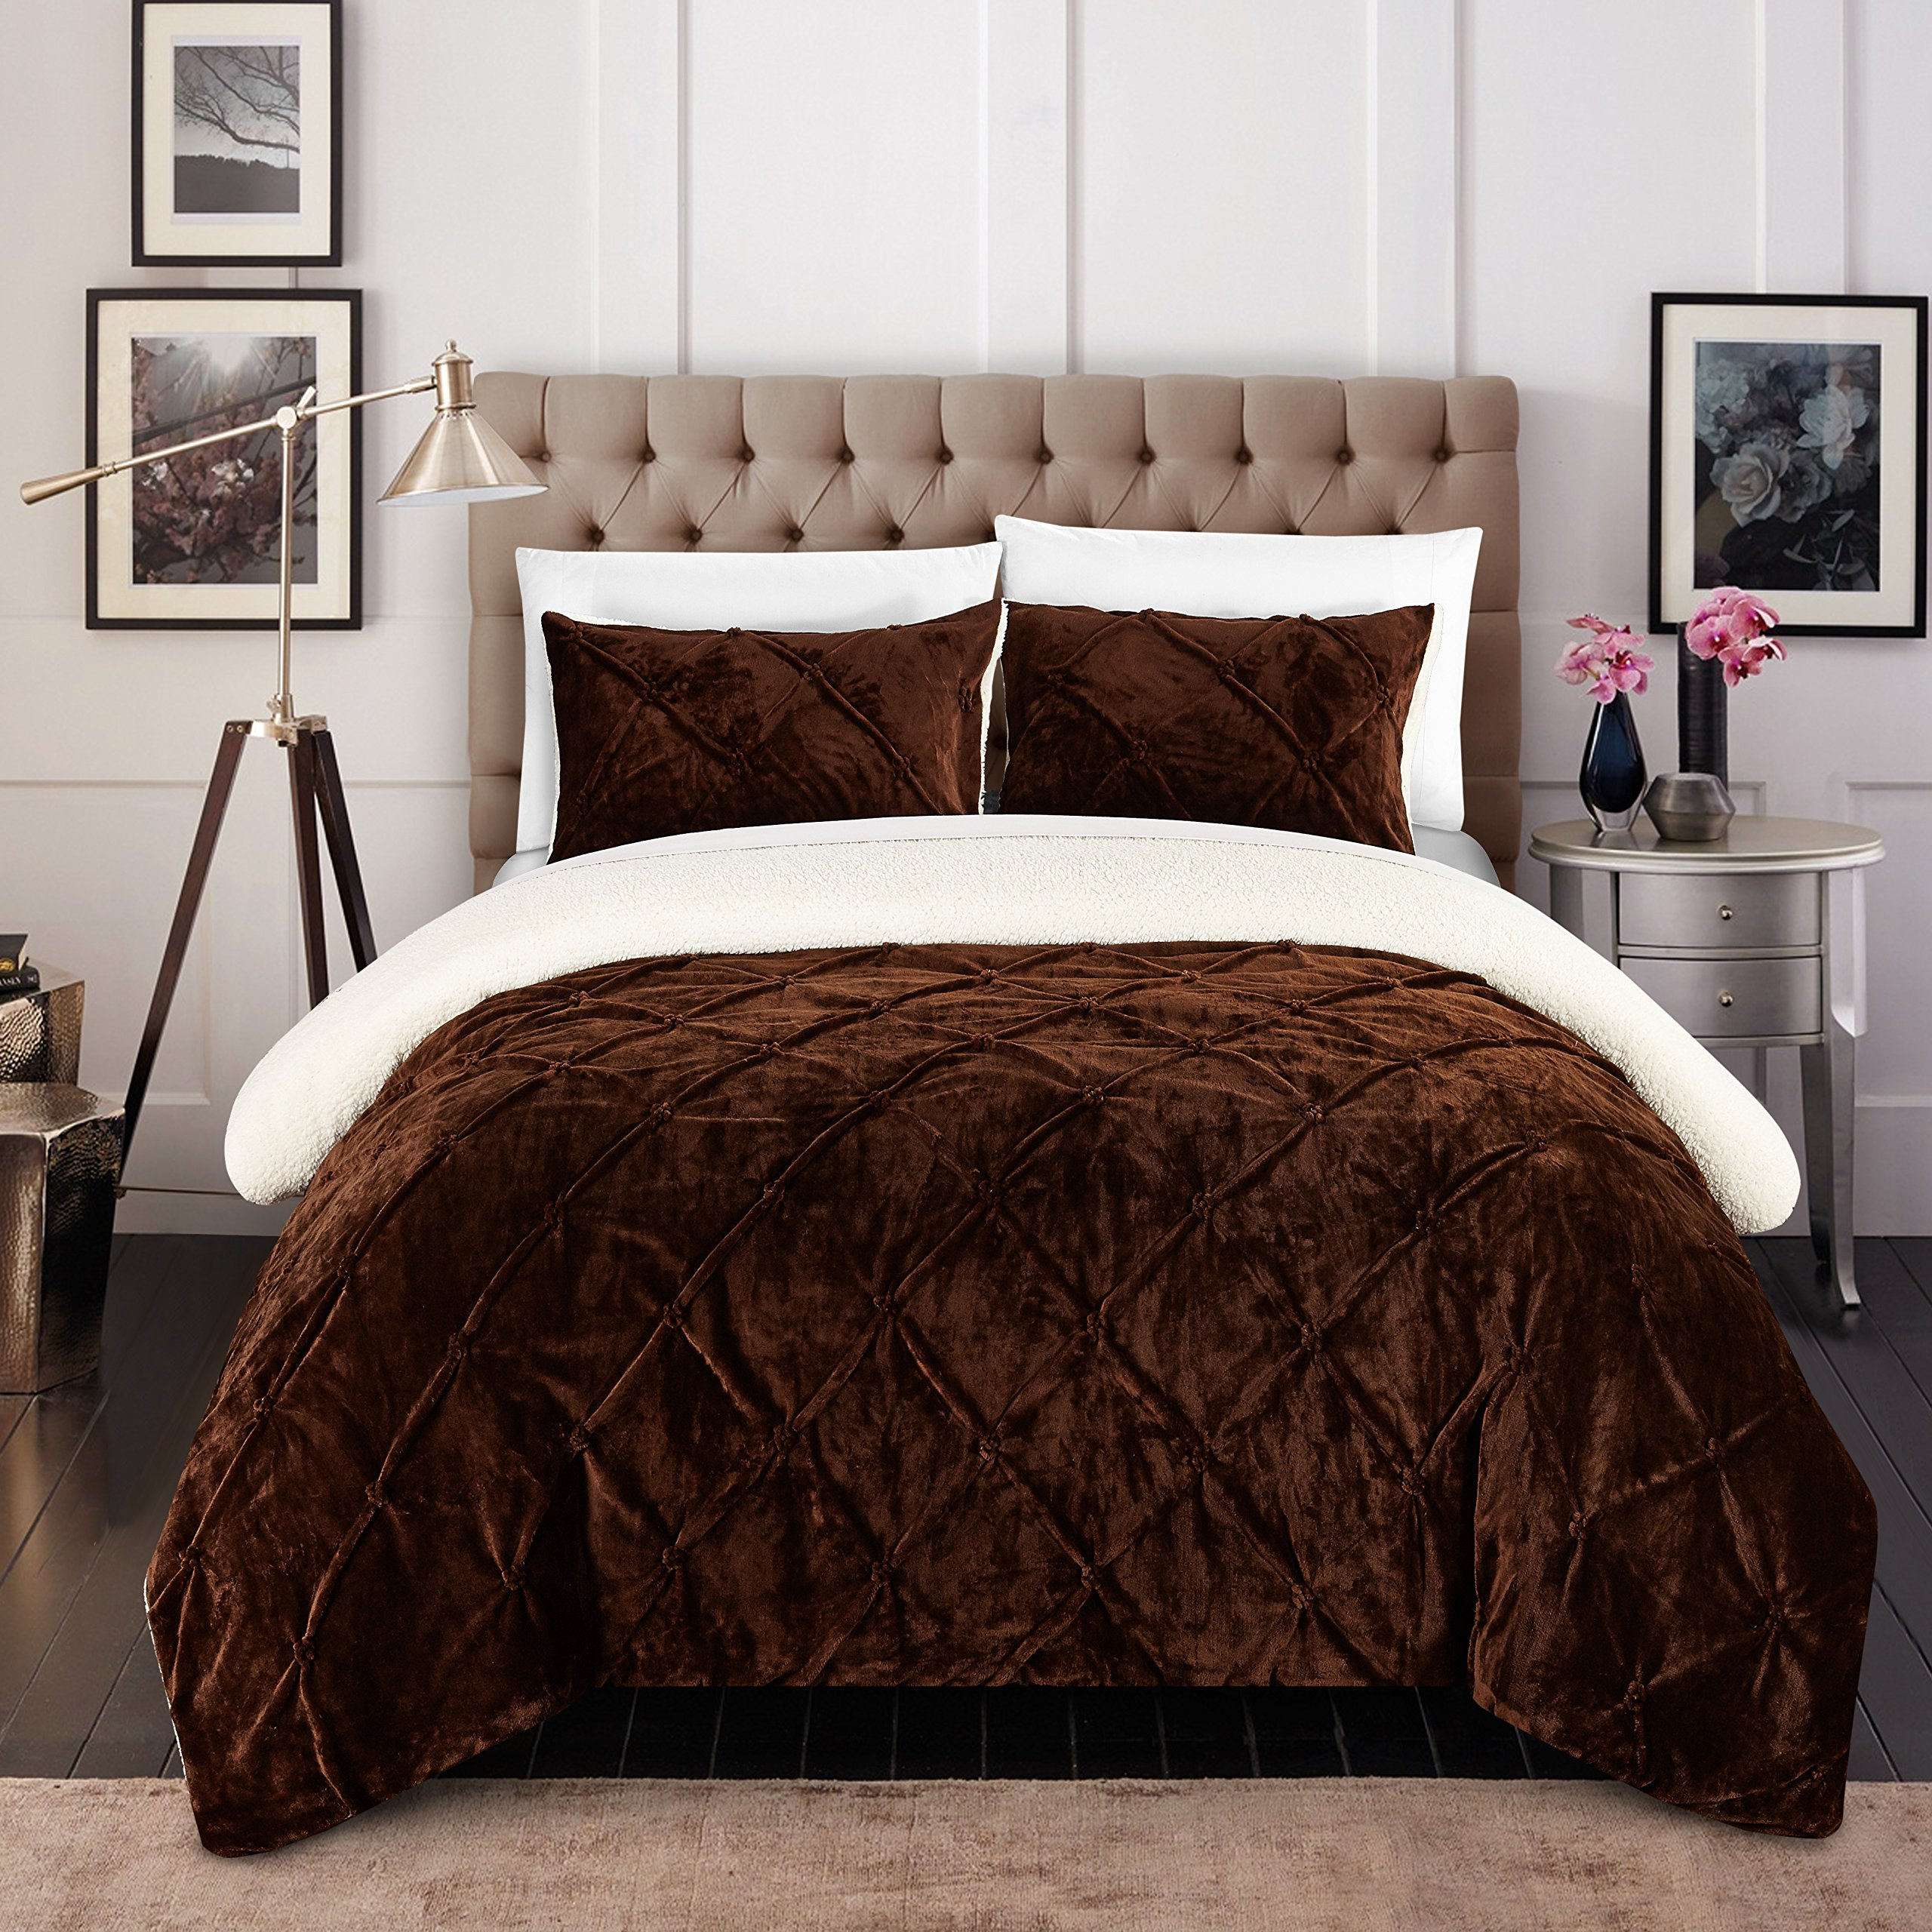 Chic Home CS5116-AN Josepha 3Piece Josepha Pinch Pleated Ruffled & Pin Tuck Sherpa Lined King Bed In A Bag Comforter Set Brown,King by Chic Home